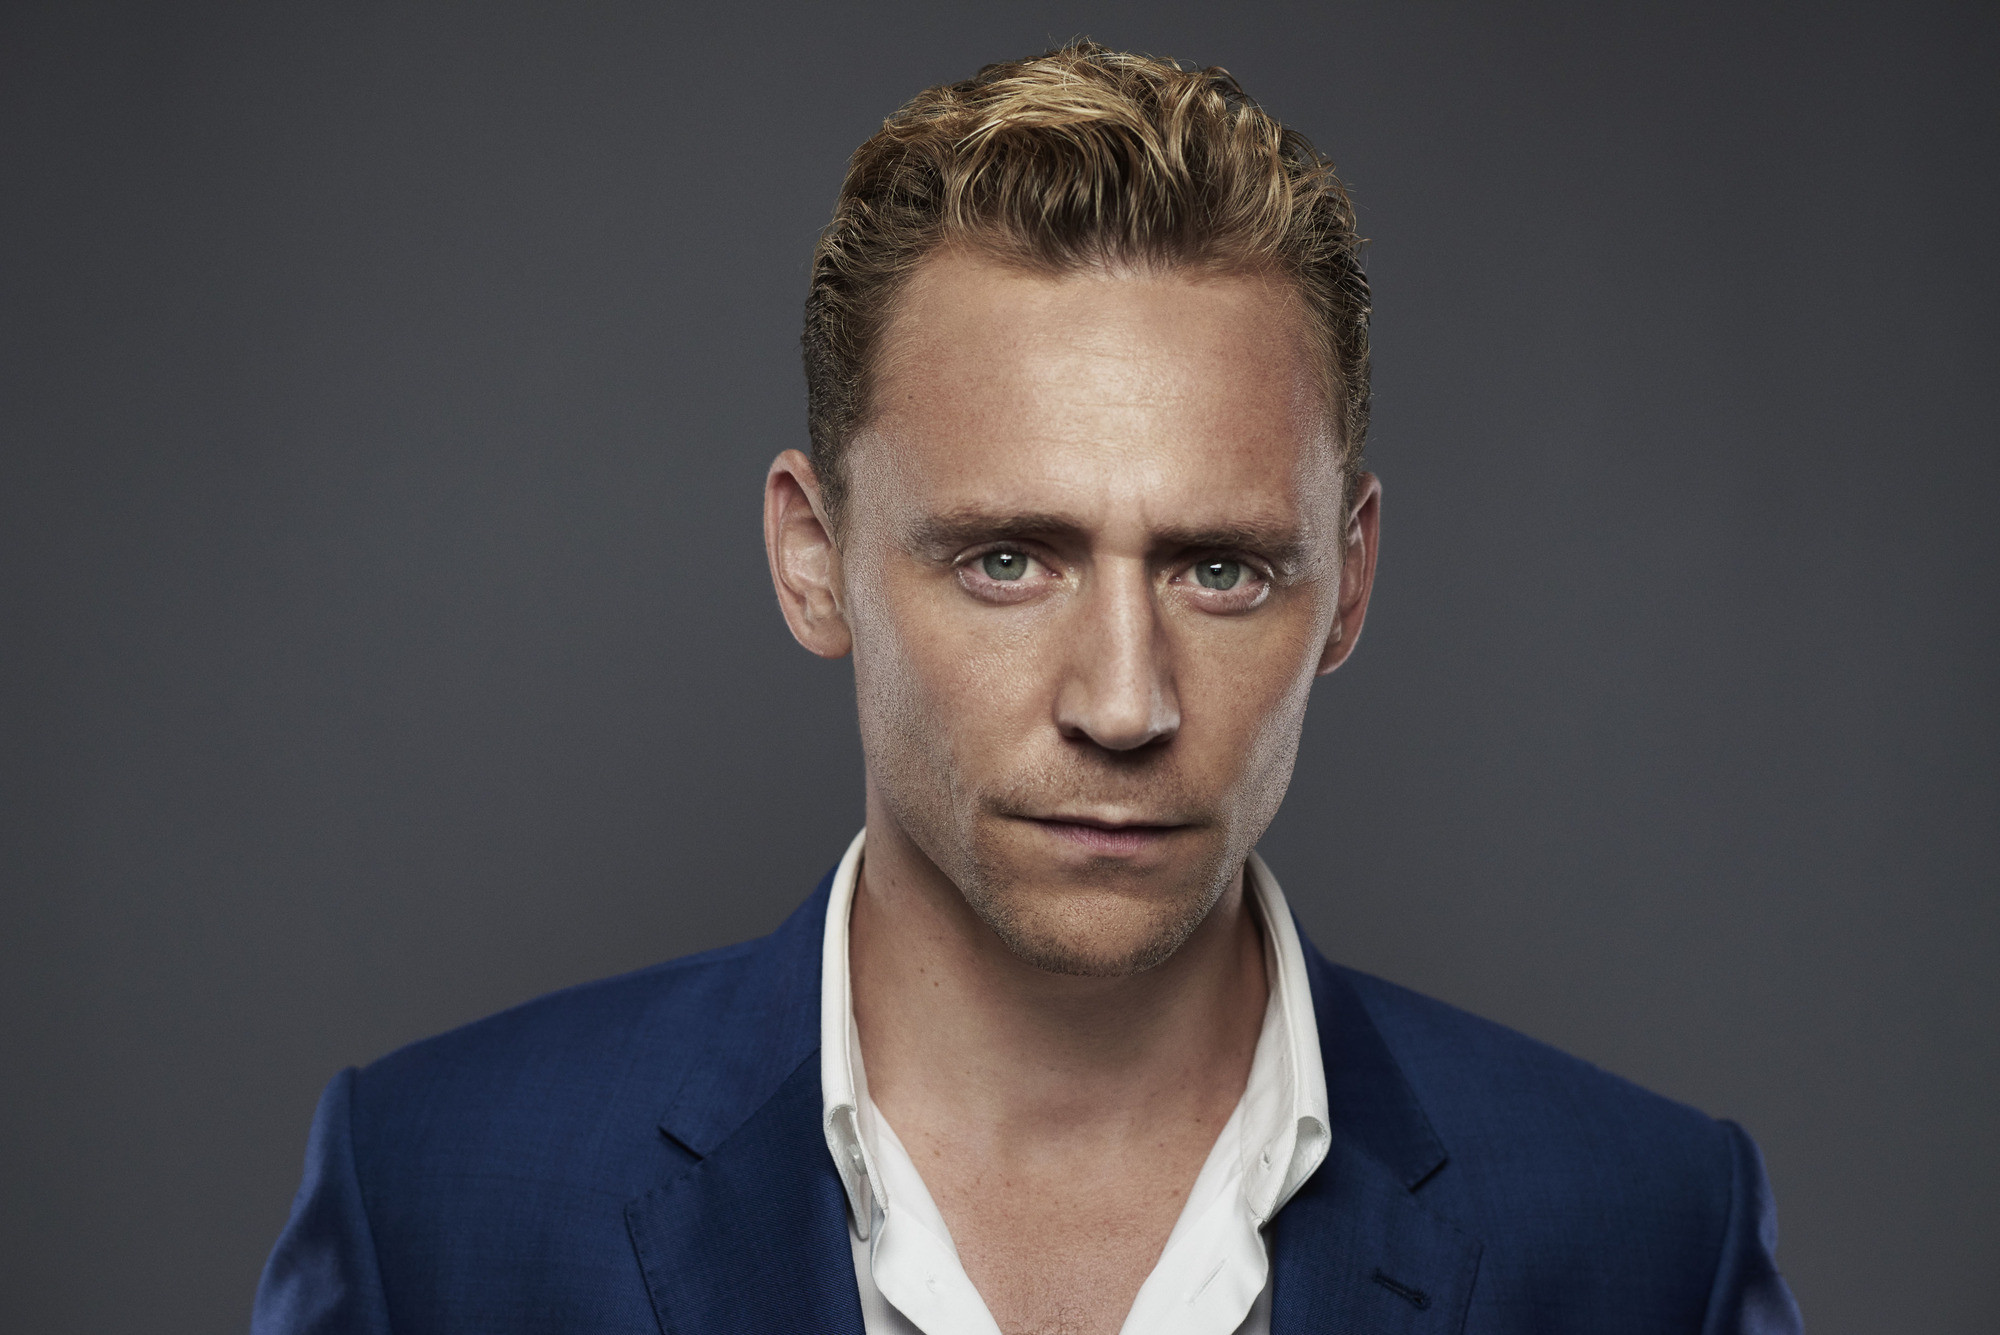 Tom Hiddleston Wallpapers. Tom Hiddleston HD Wallpapers